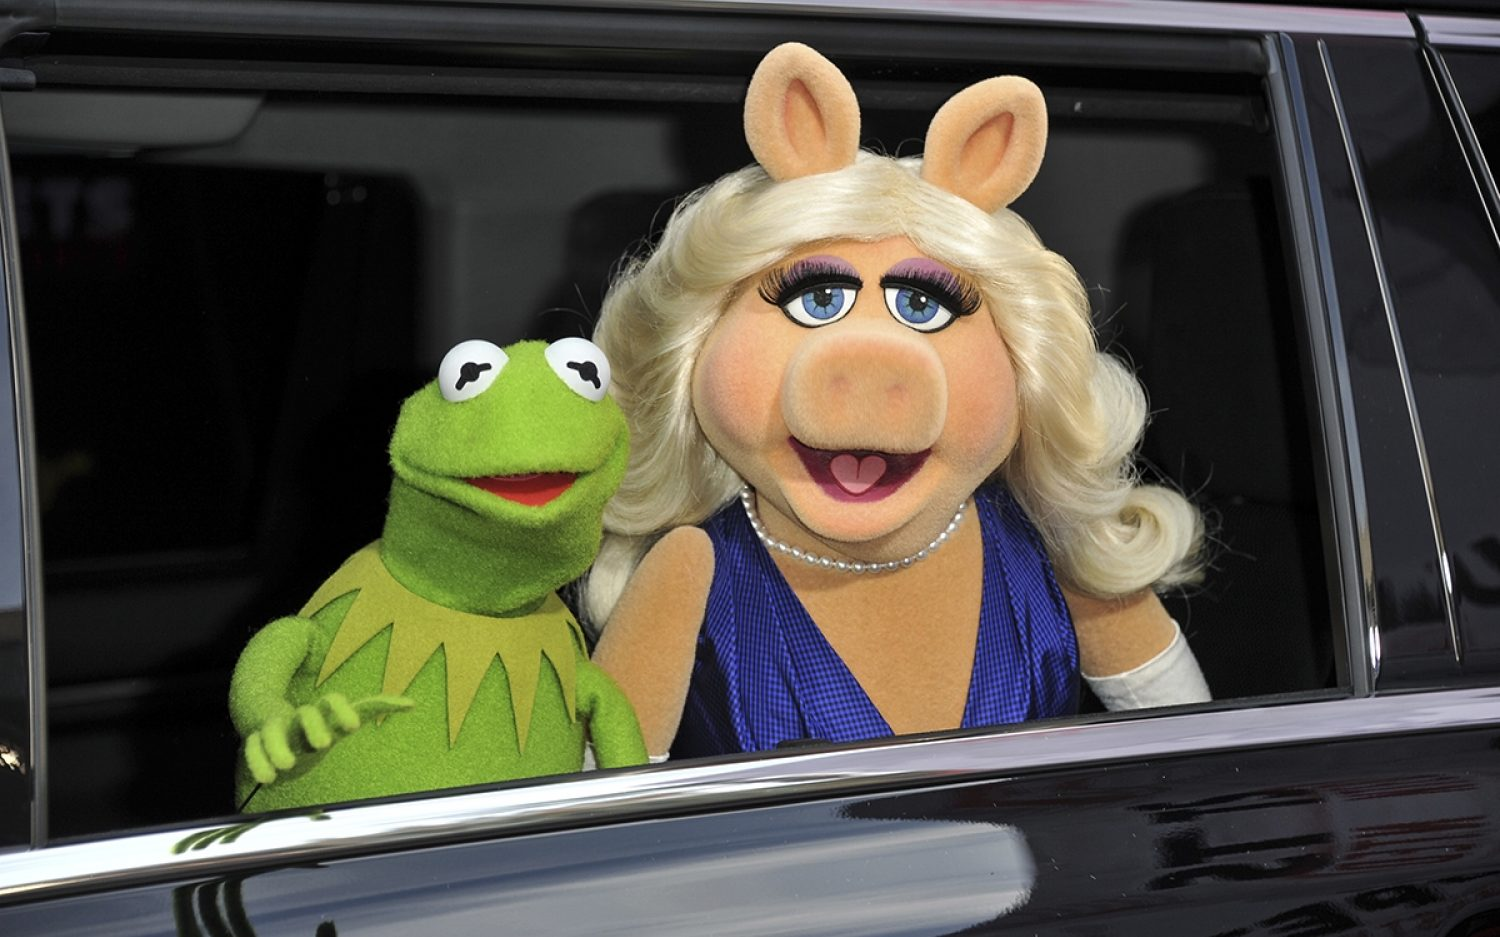 Disney adds disclaimer to Muppet episodes